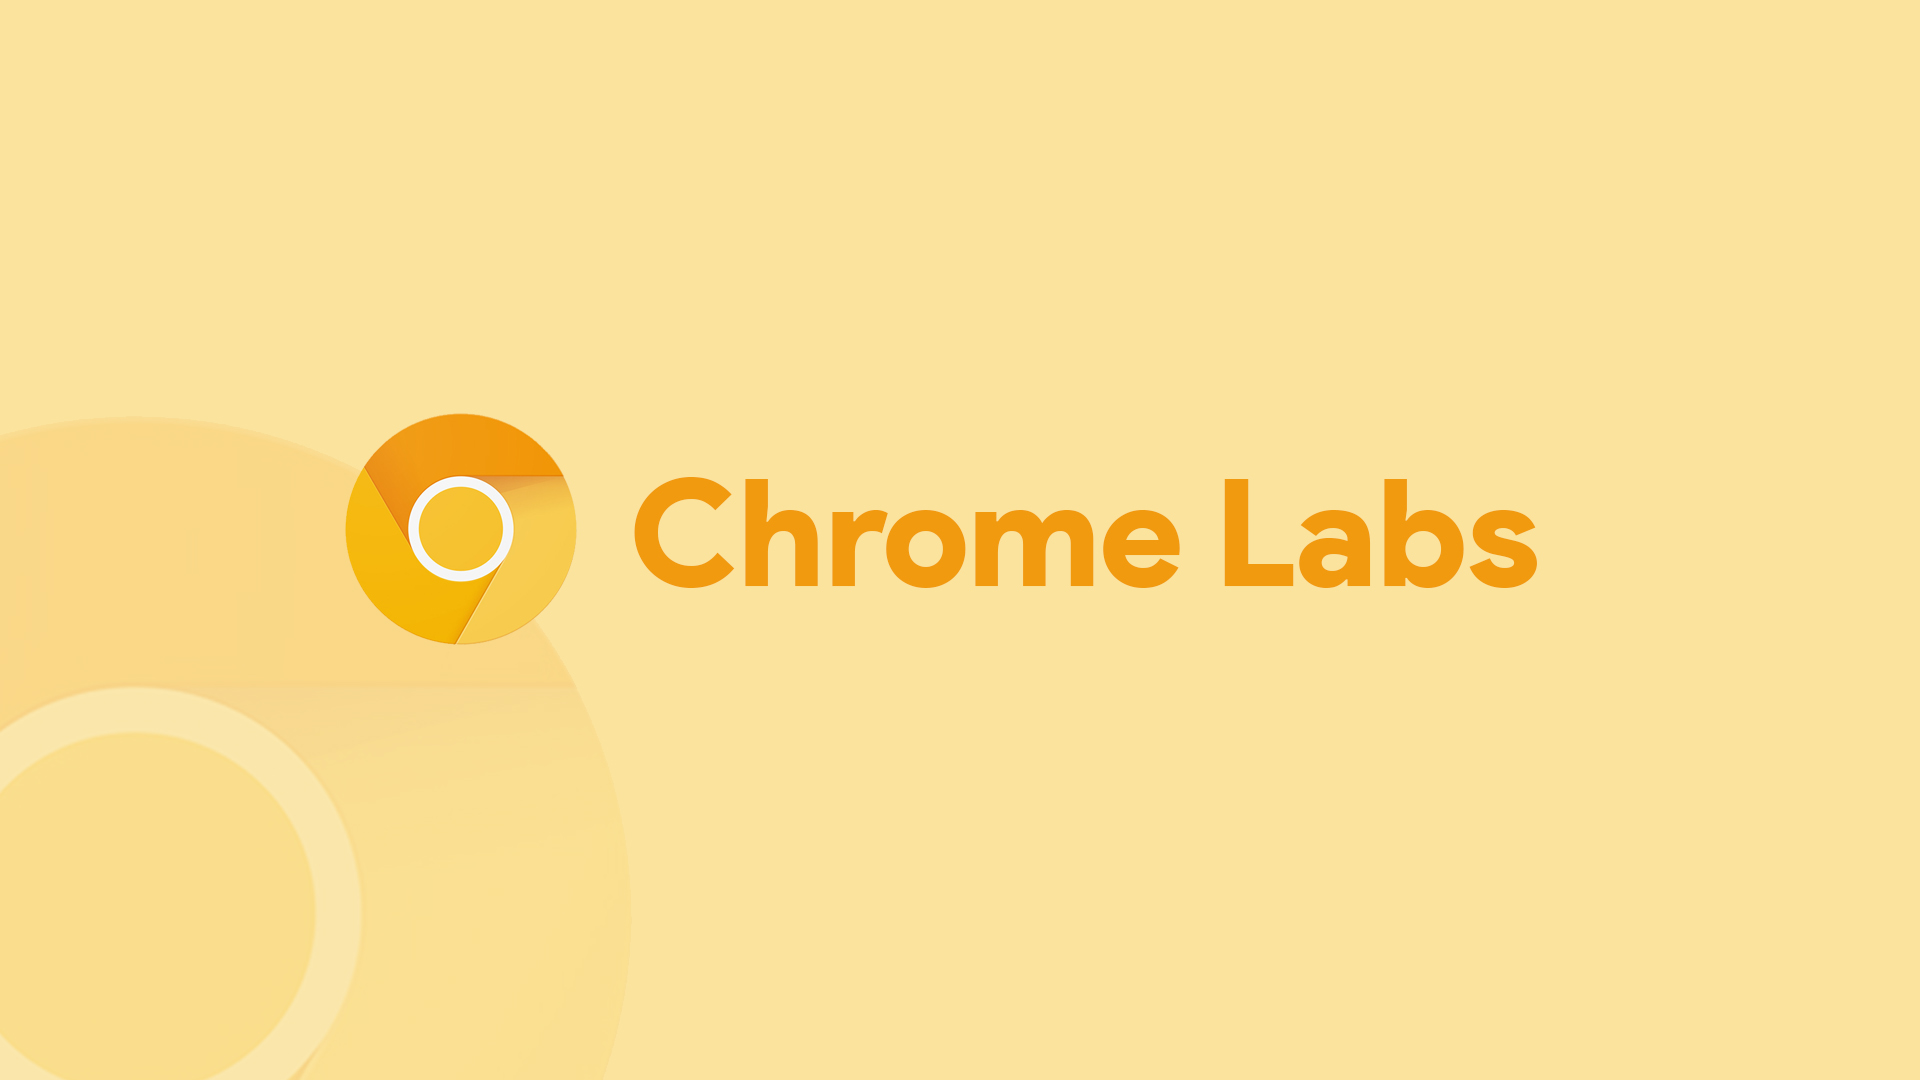 'Chrome Labs' becomes the new home for experimental browser features